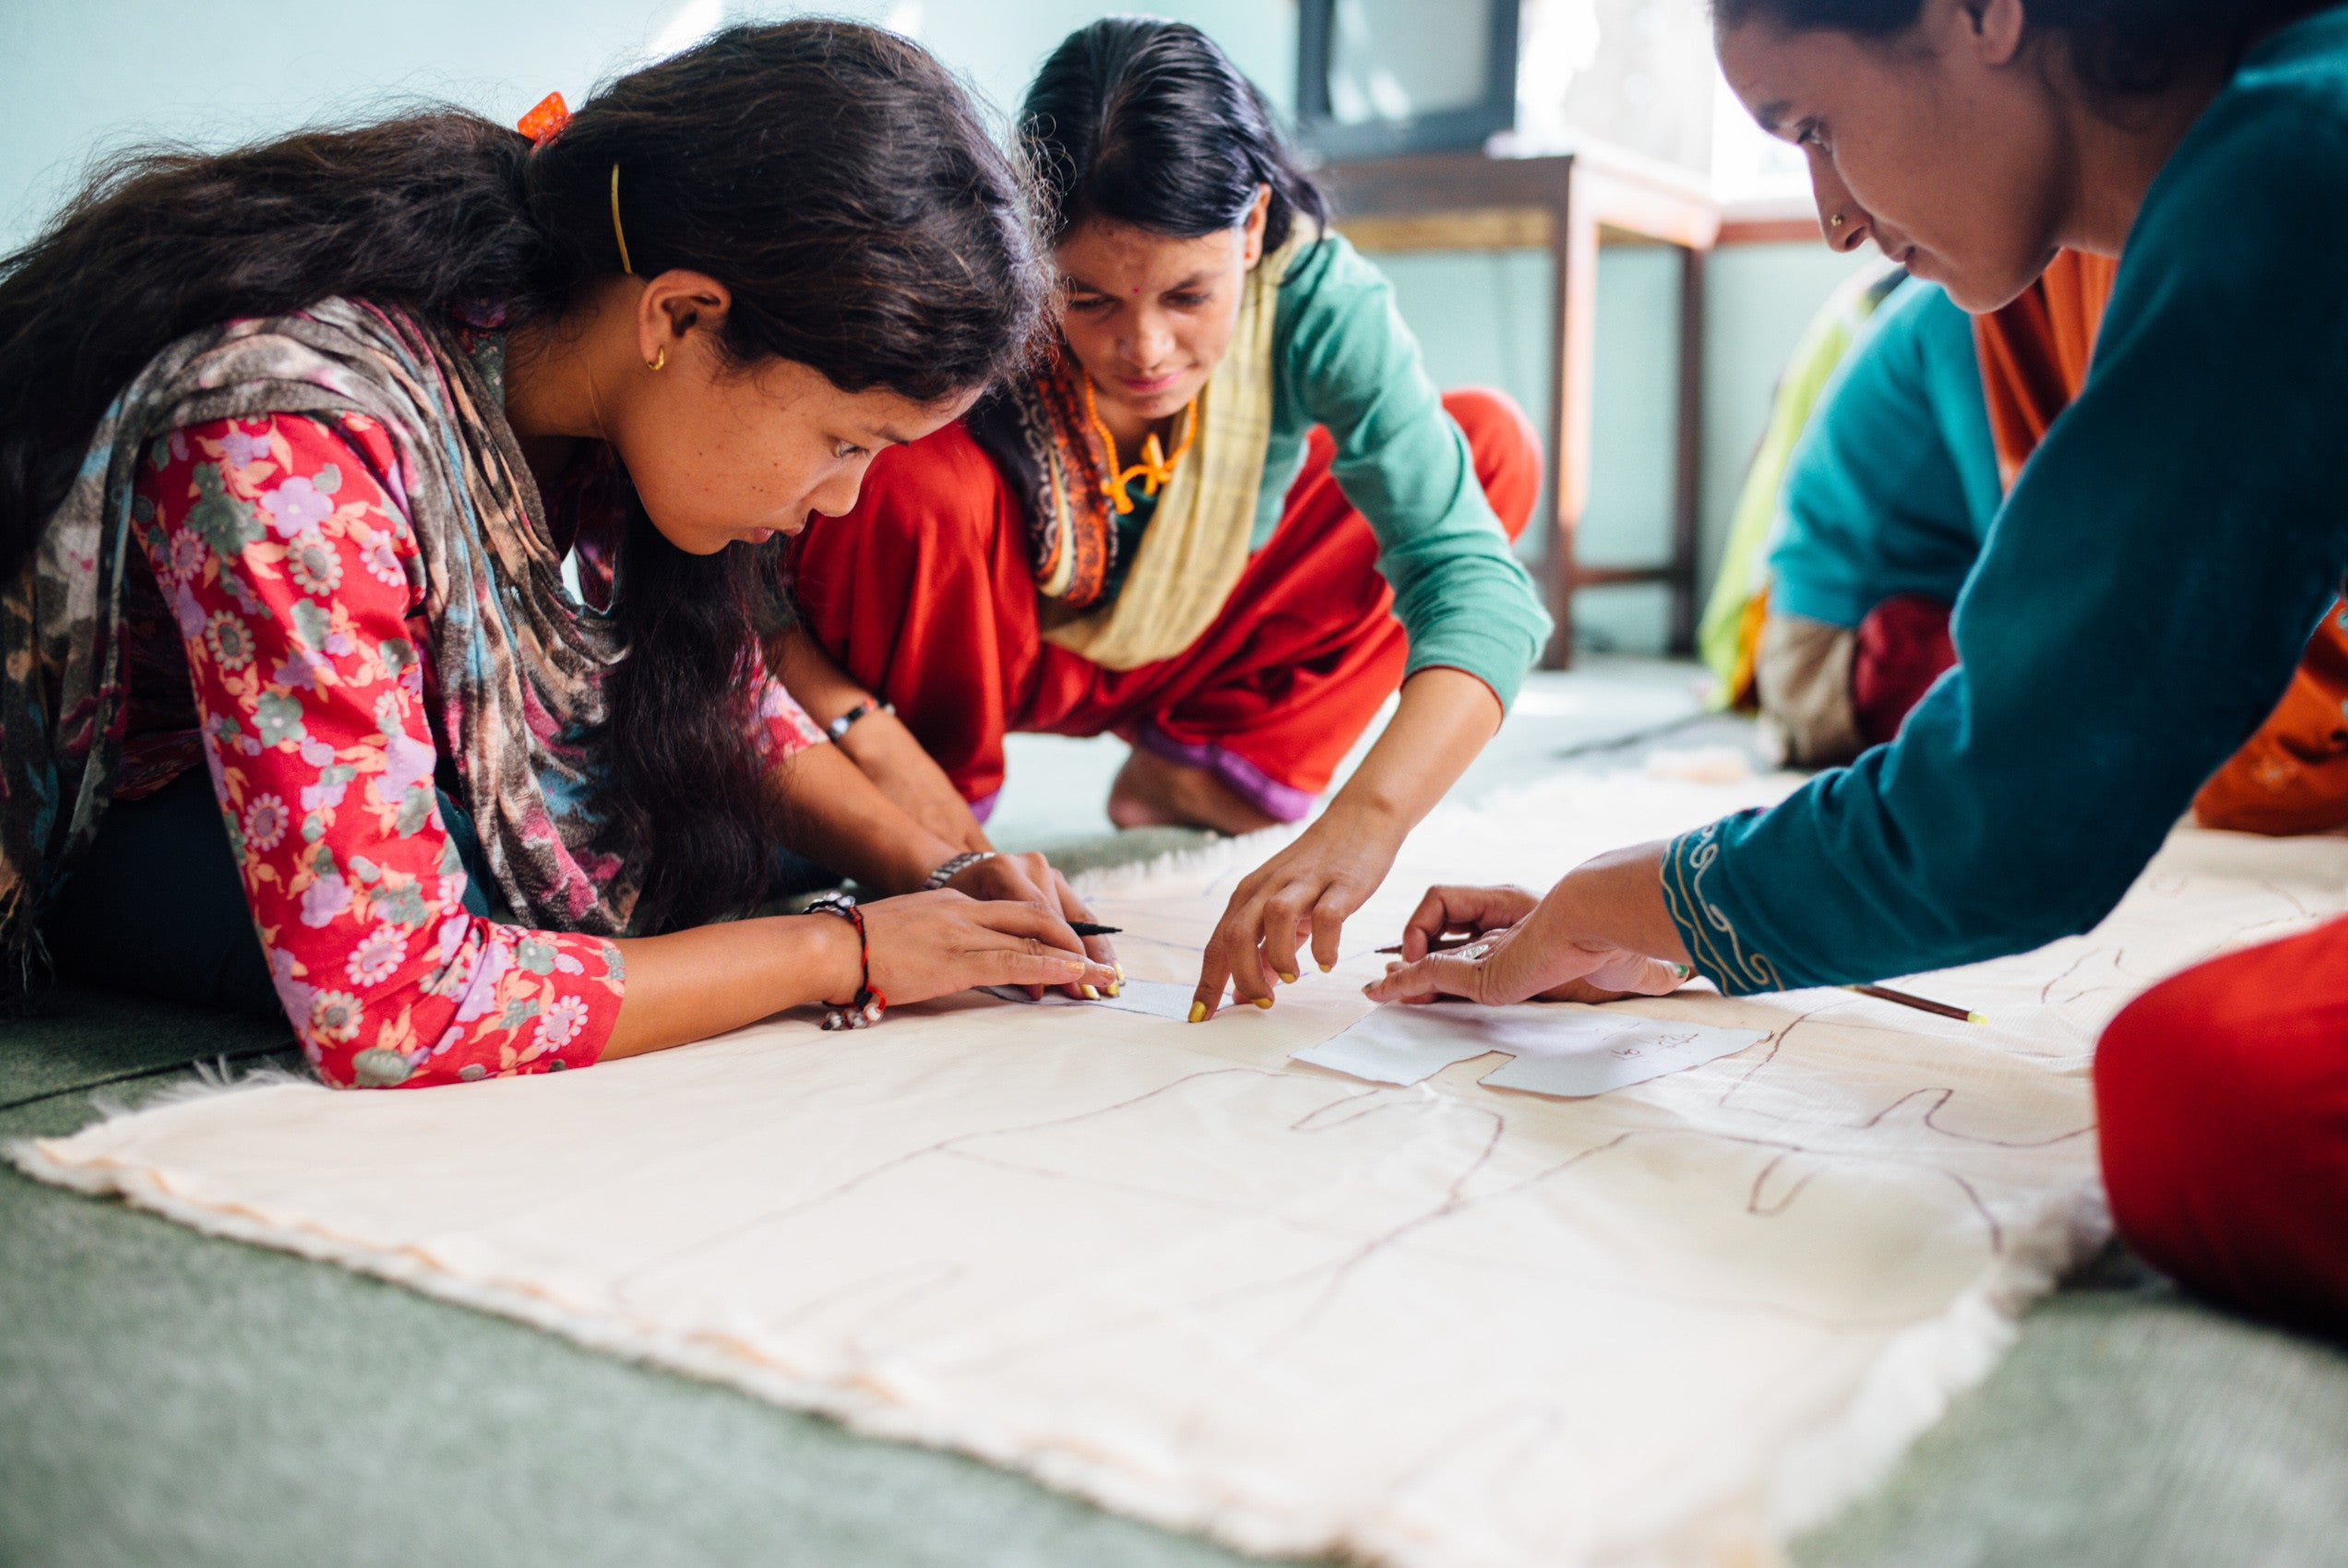 14 girls graduate from Nepal 'She Has Hope' rehabilitation home, 9 starting new tailoring businesses; new rescues arriving this month